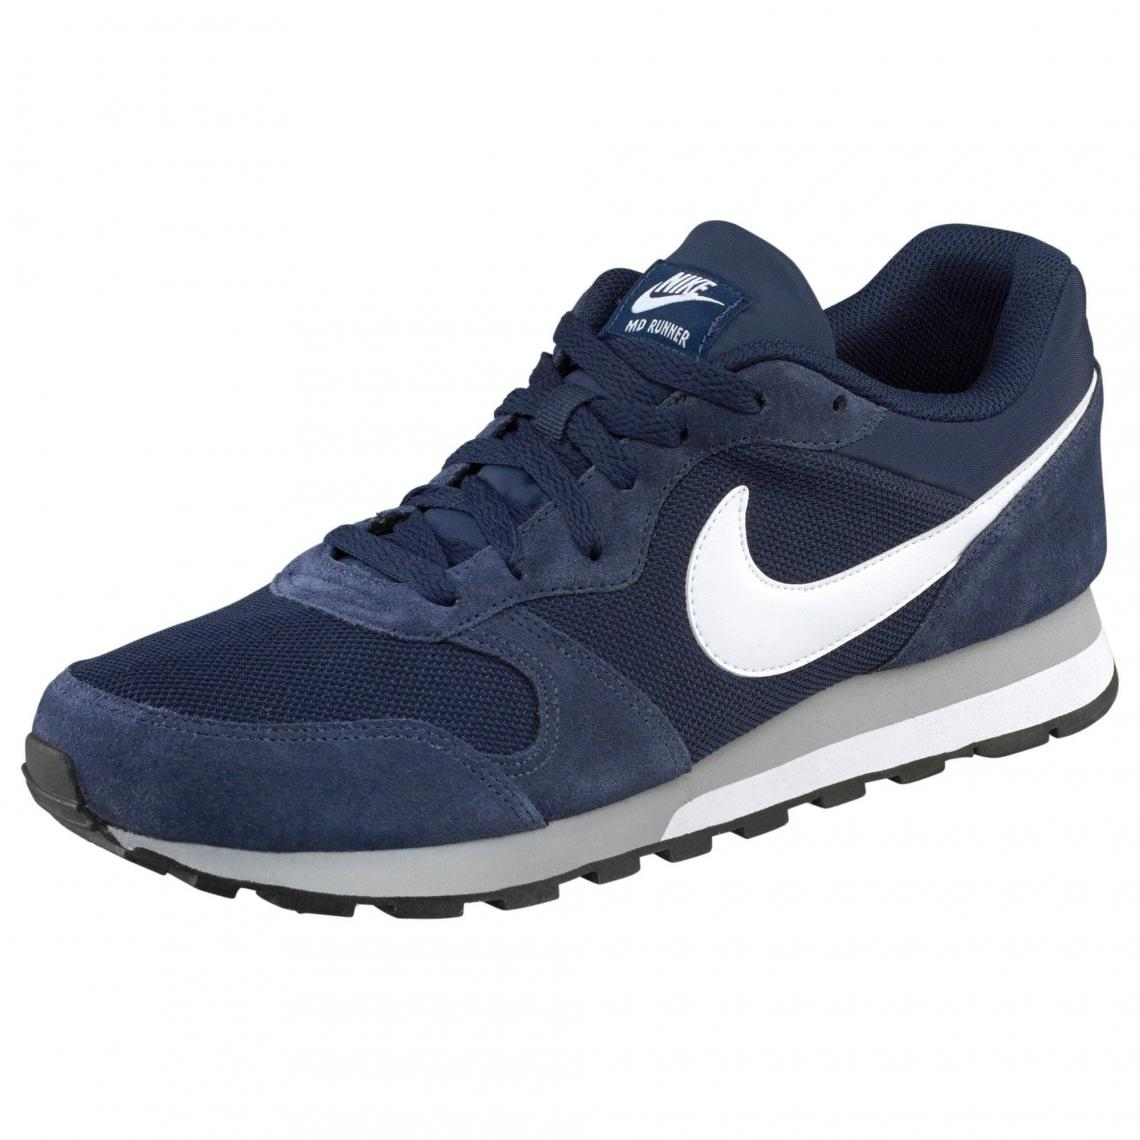 sports shoes 05f17 fb3ee Nike MD Runner 2 chaussures de tennis homme - Bleu Nike Homme